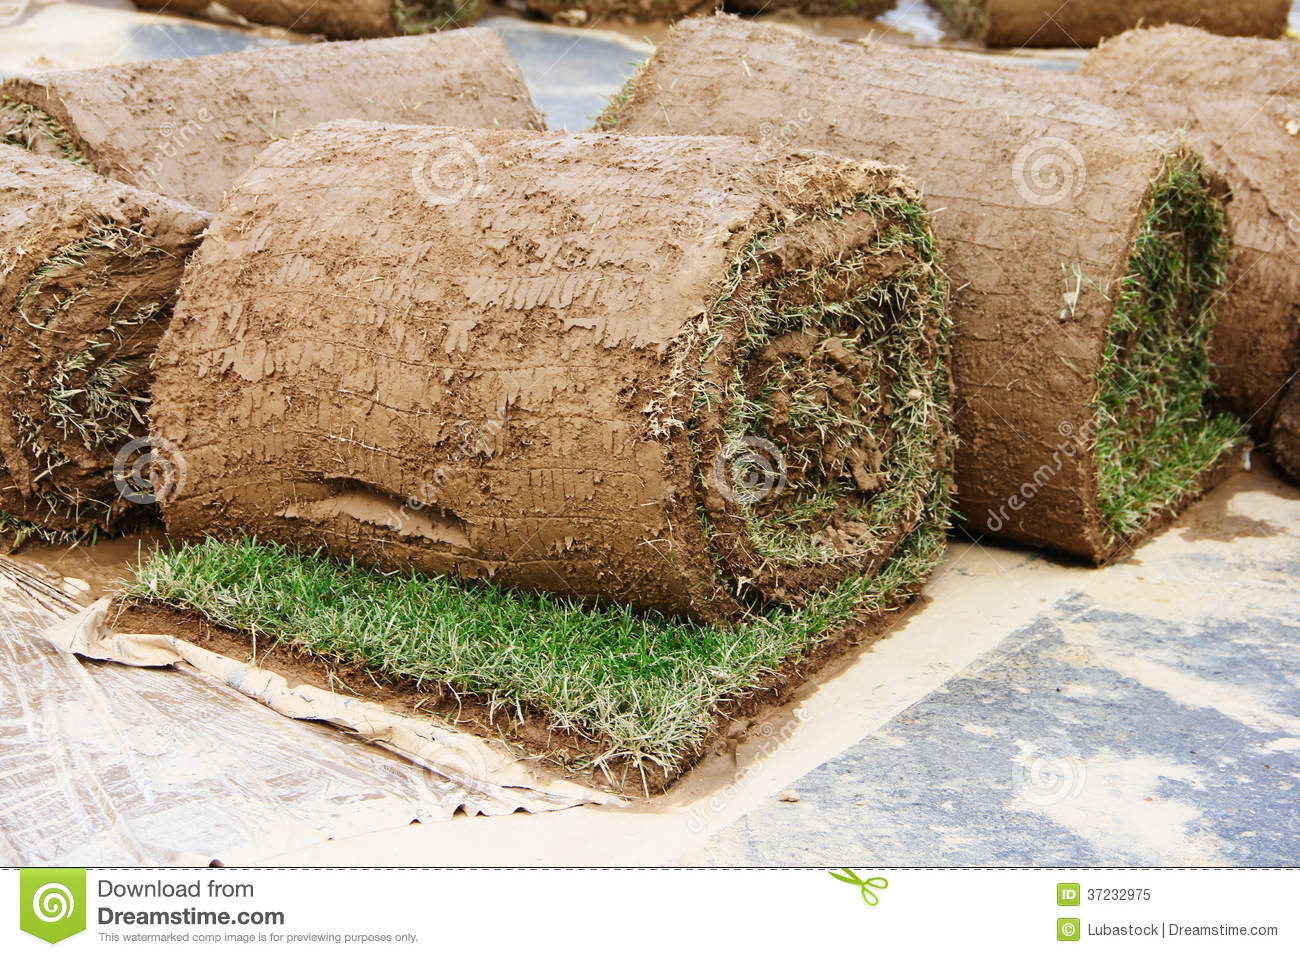 how to cut and roll sod